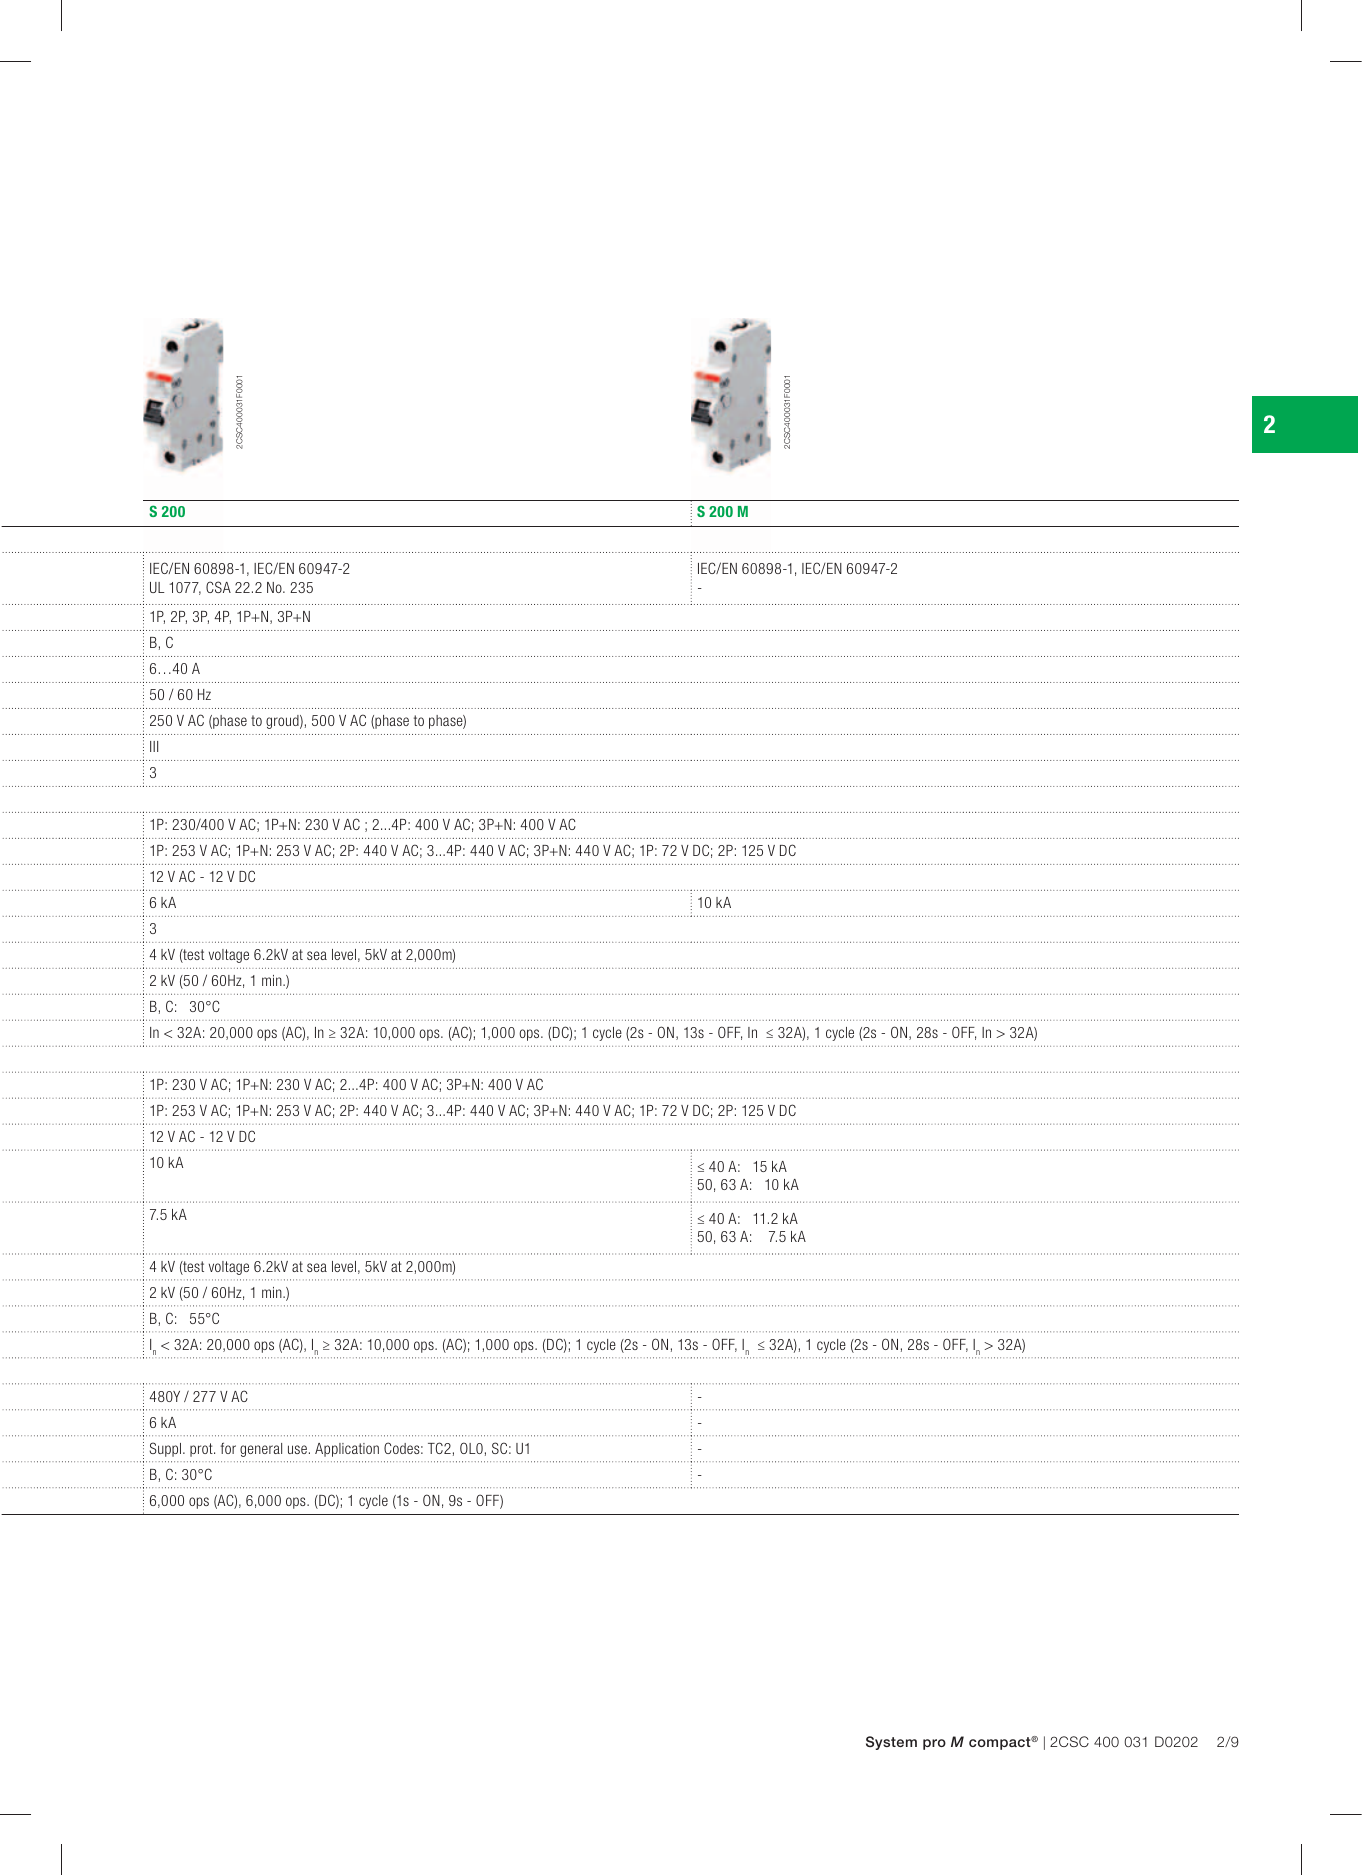 Magnetic Hydraulic Circuit Breaker 1 Pole AMR Series 250 V 20 A 18 s 10 kA